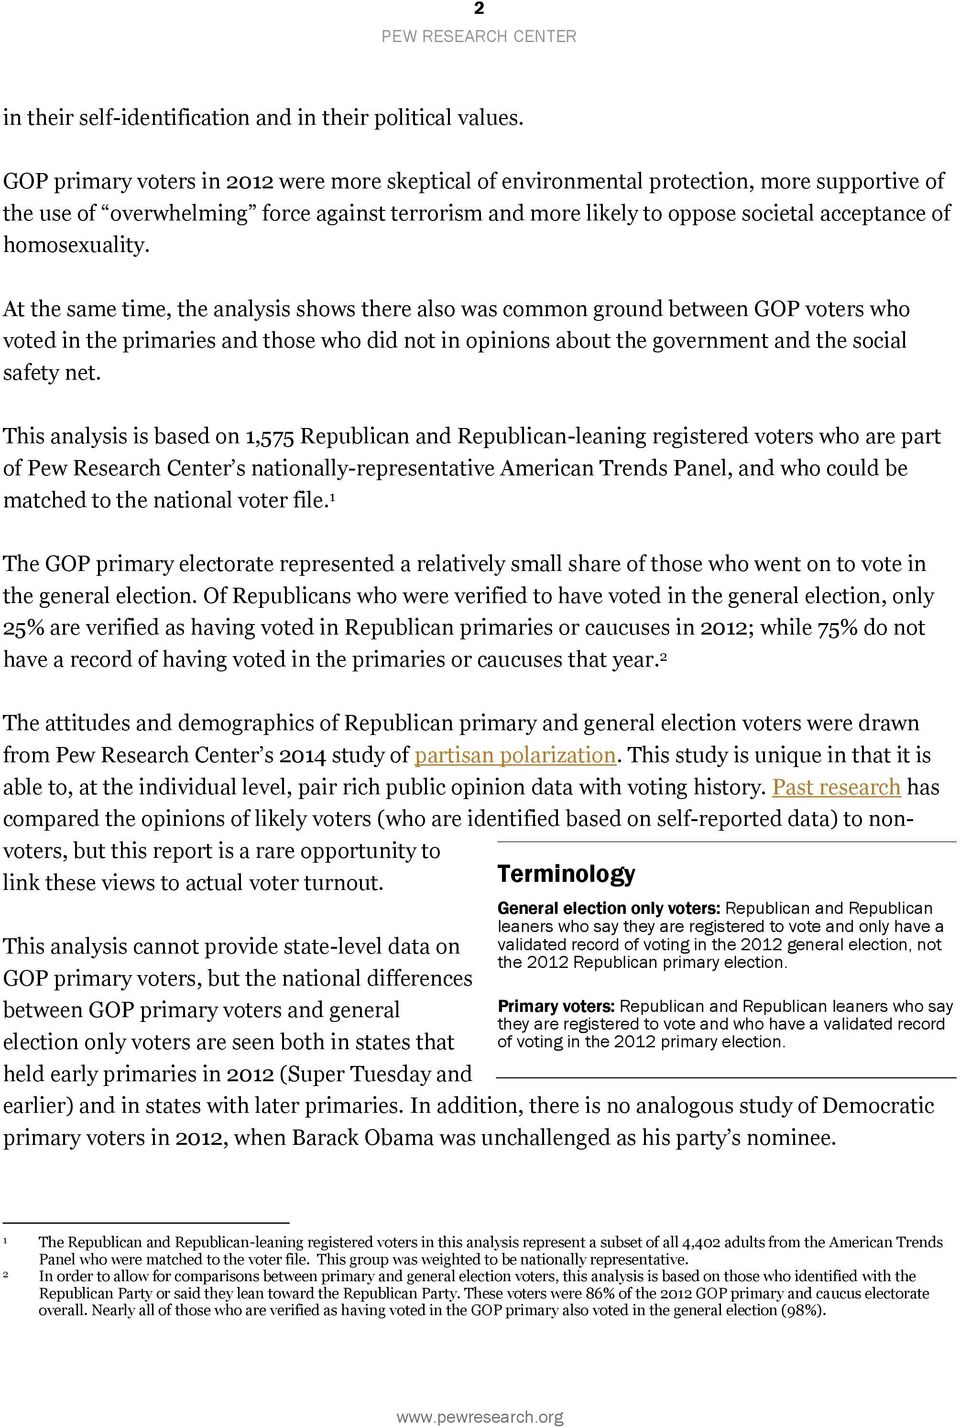 At the same time, the analysis shows there also was common ground between GOP who voted in the primaries and those who did not in opinions about the government and the social safety net.